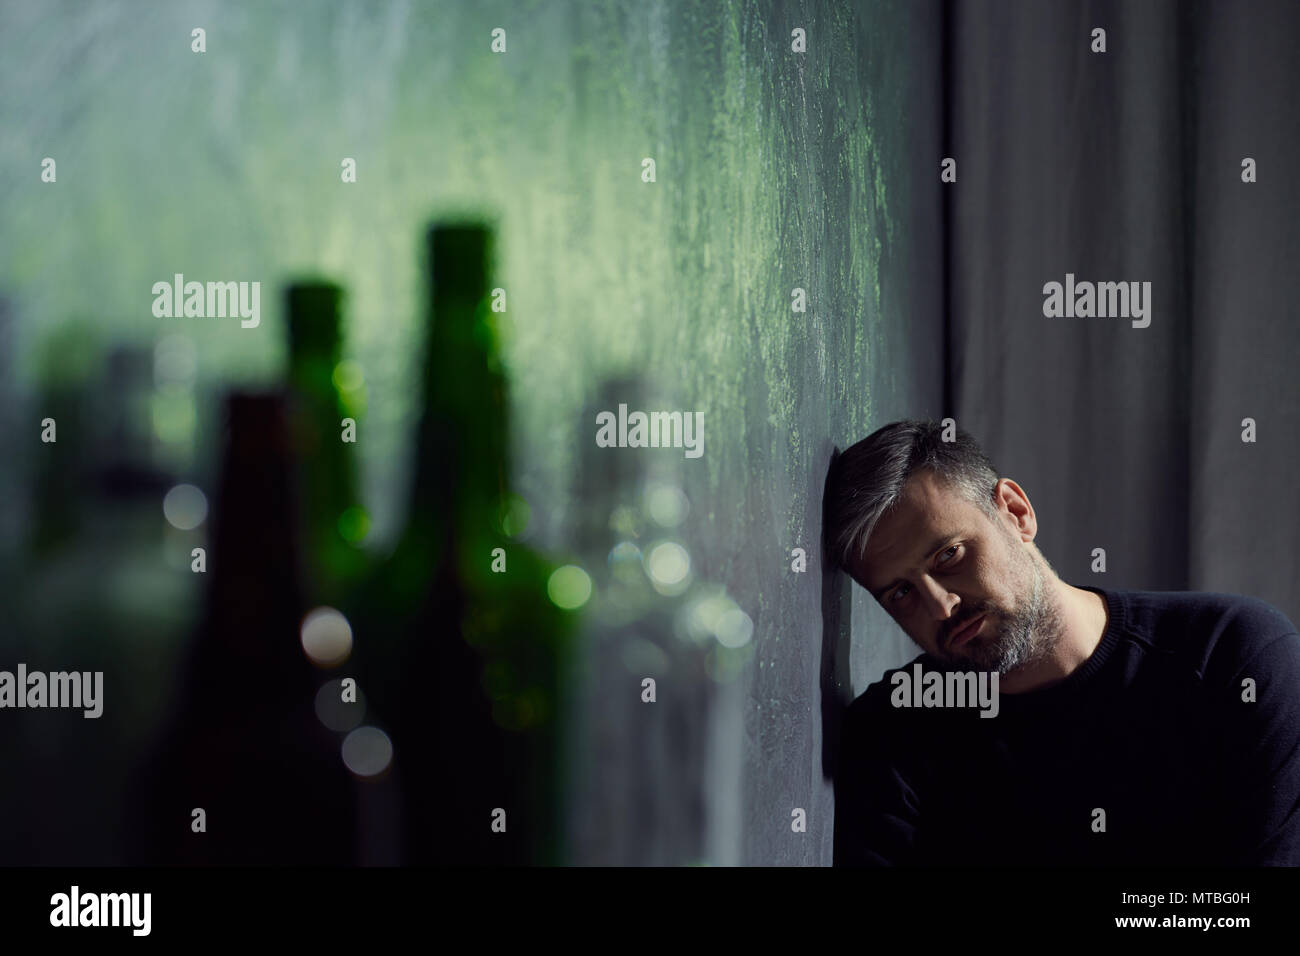 Man suffering from depression with empty alcohol bottles - Stock Image